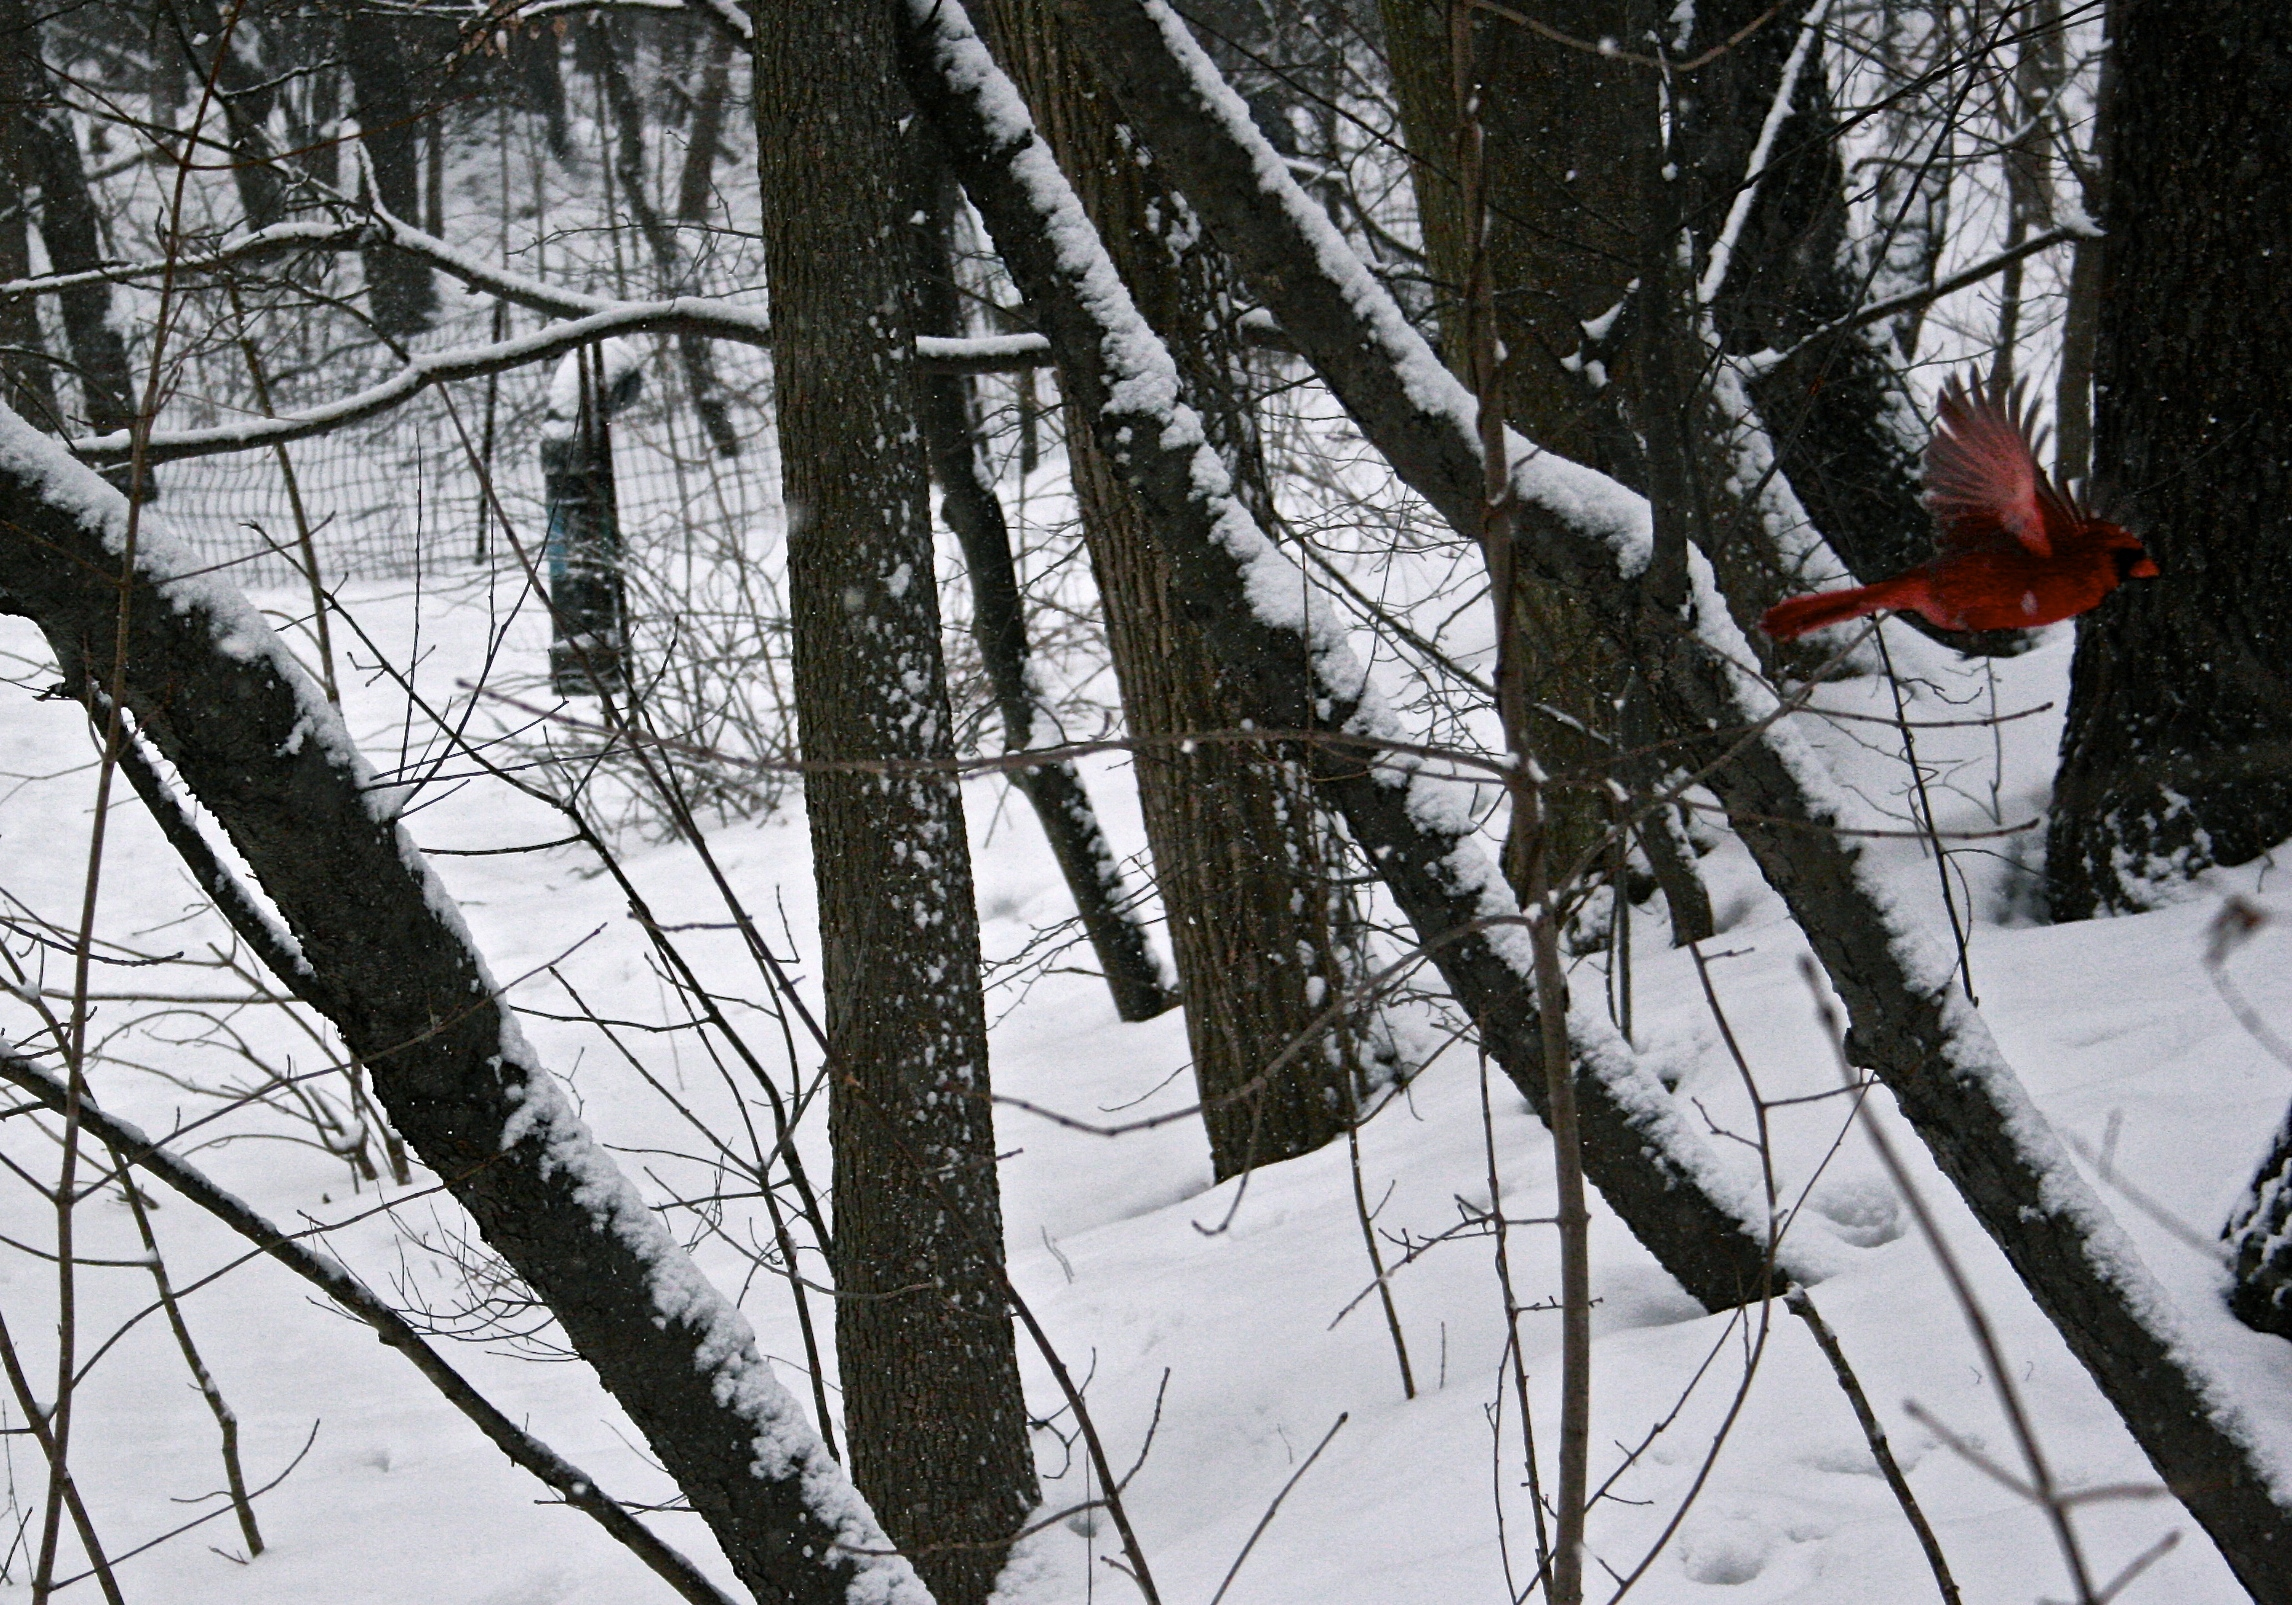 cardinal-flying-in-snow-wbc.jpg